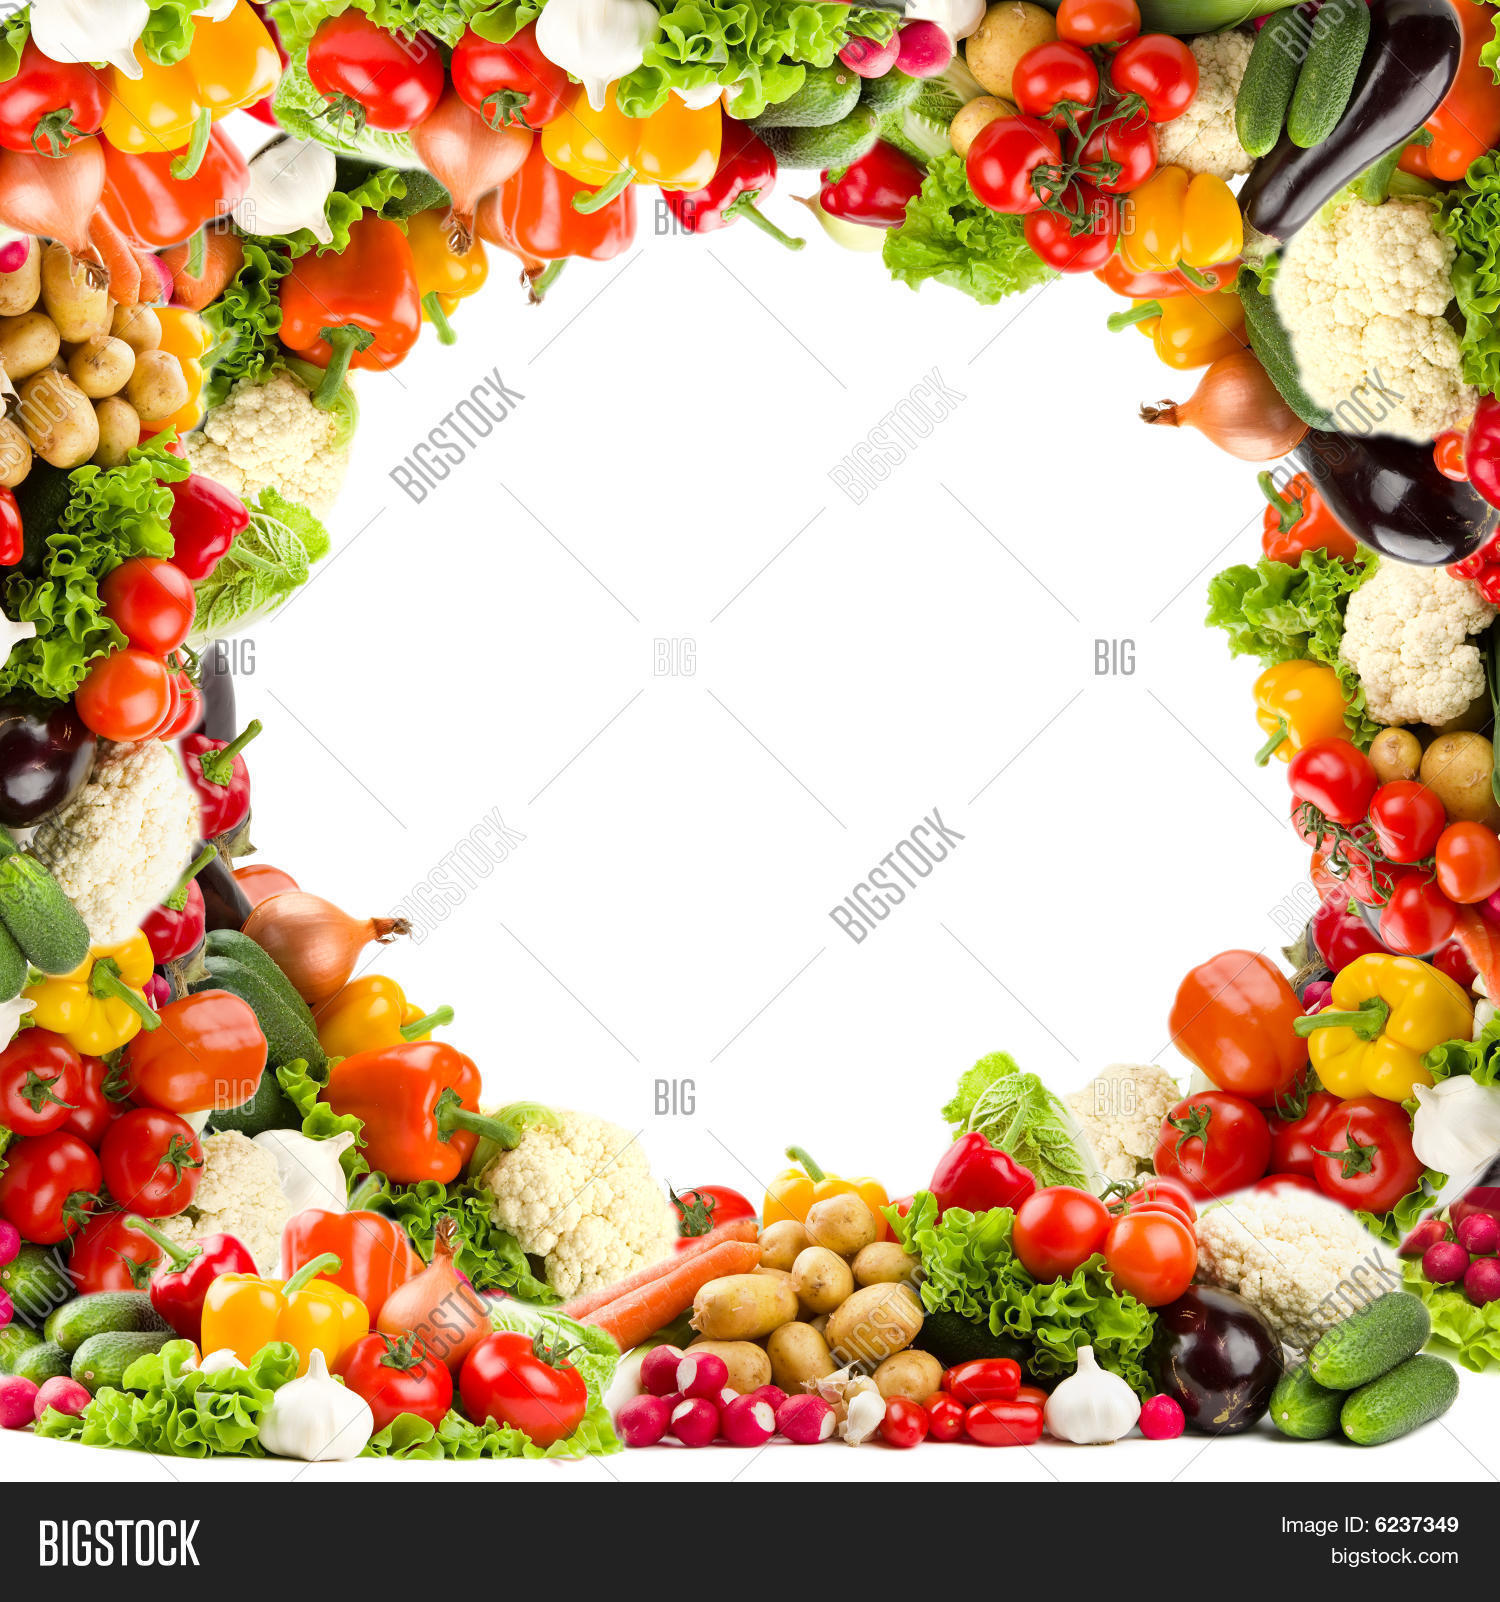 Healthy Vegetable Image & Photo (Free Trial) | Bigstock